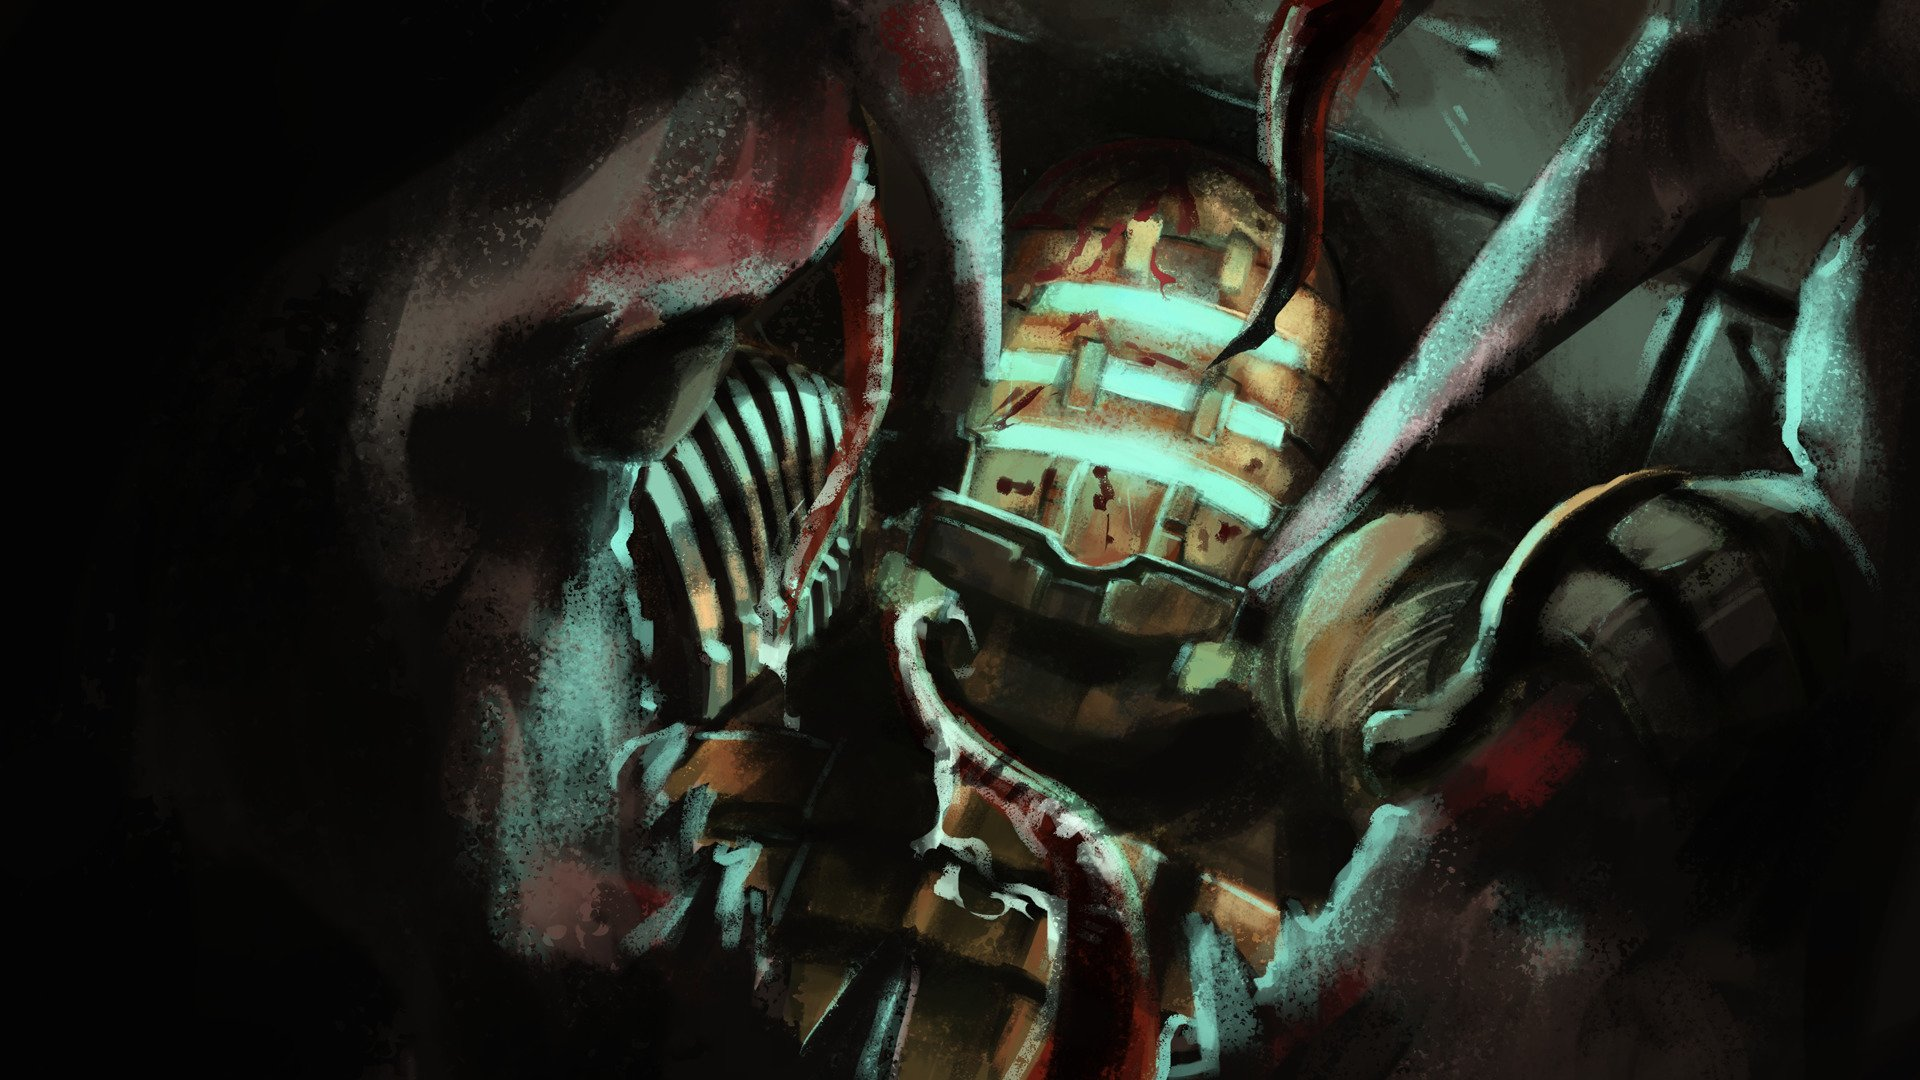 Dead Space Hd Wallpapers Desktop And Mobile Images Photos